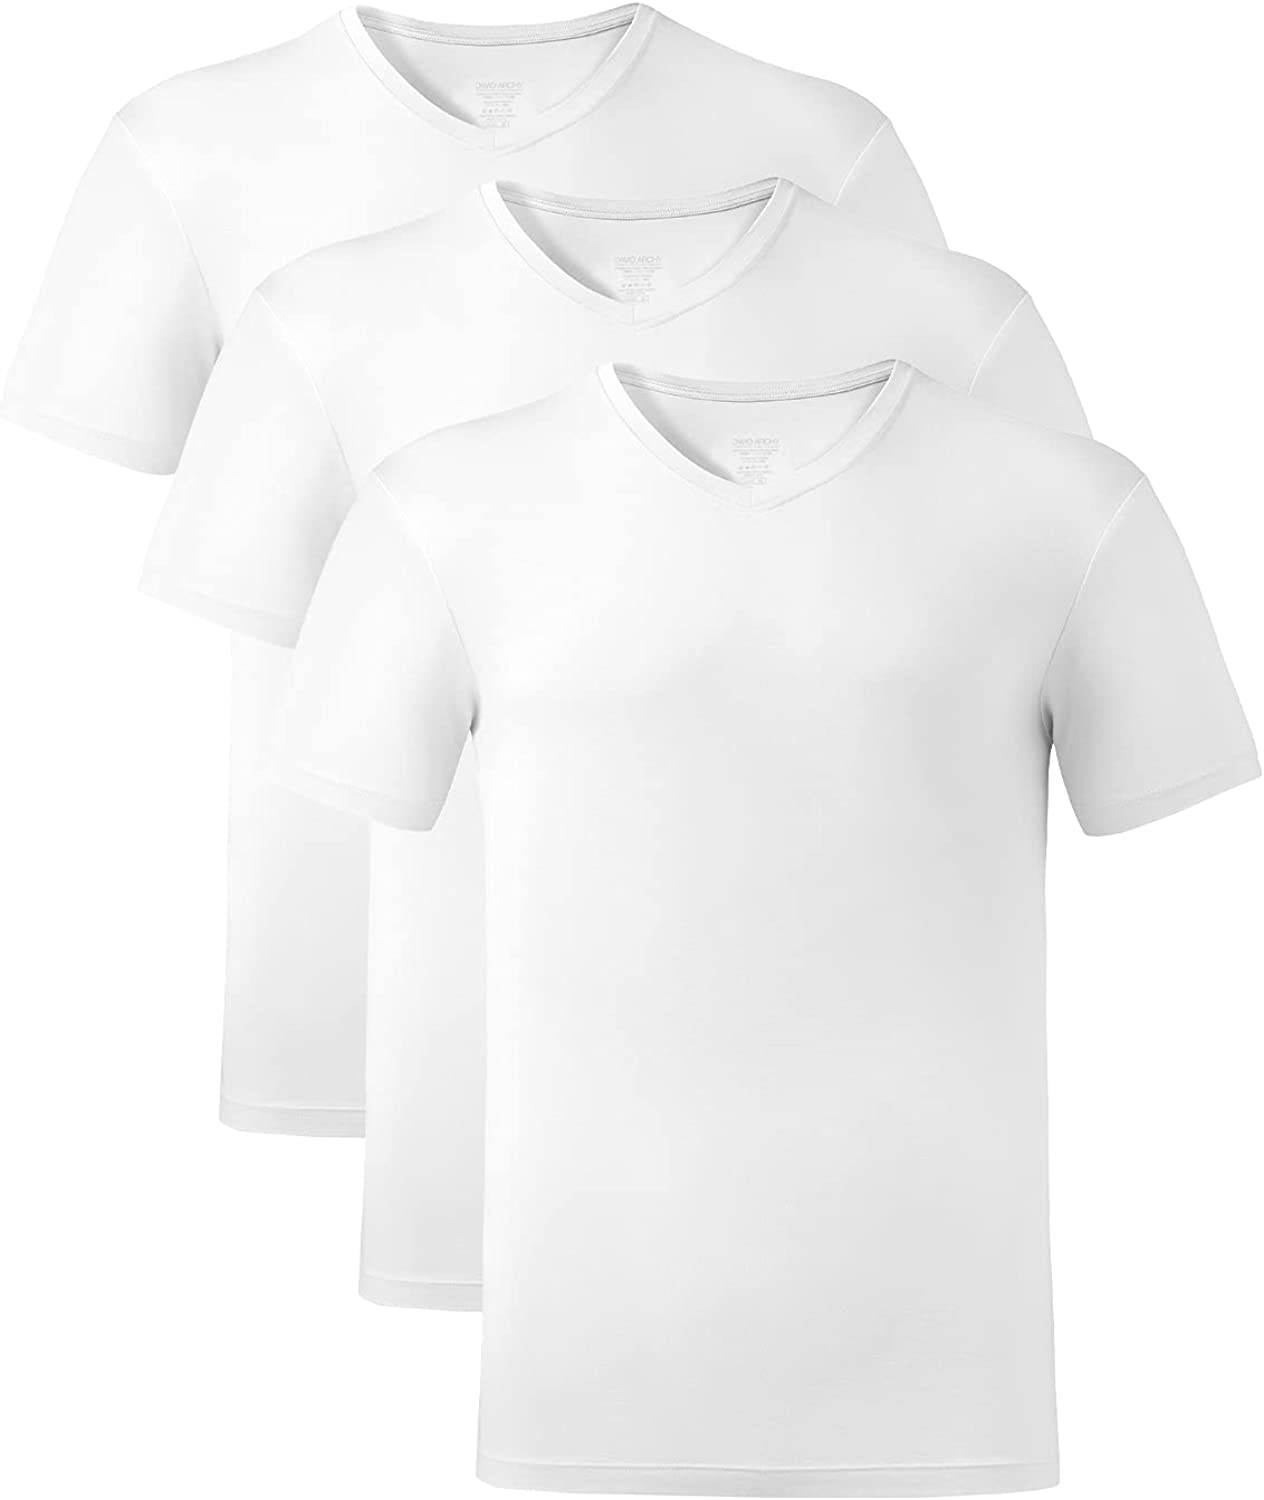 DAVID ARCHY Men's Undershirts Ultra Soft Bamboo Rayon V-Neck Breathable T-Shirts in 2 or 3 Pack